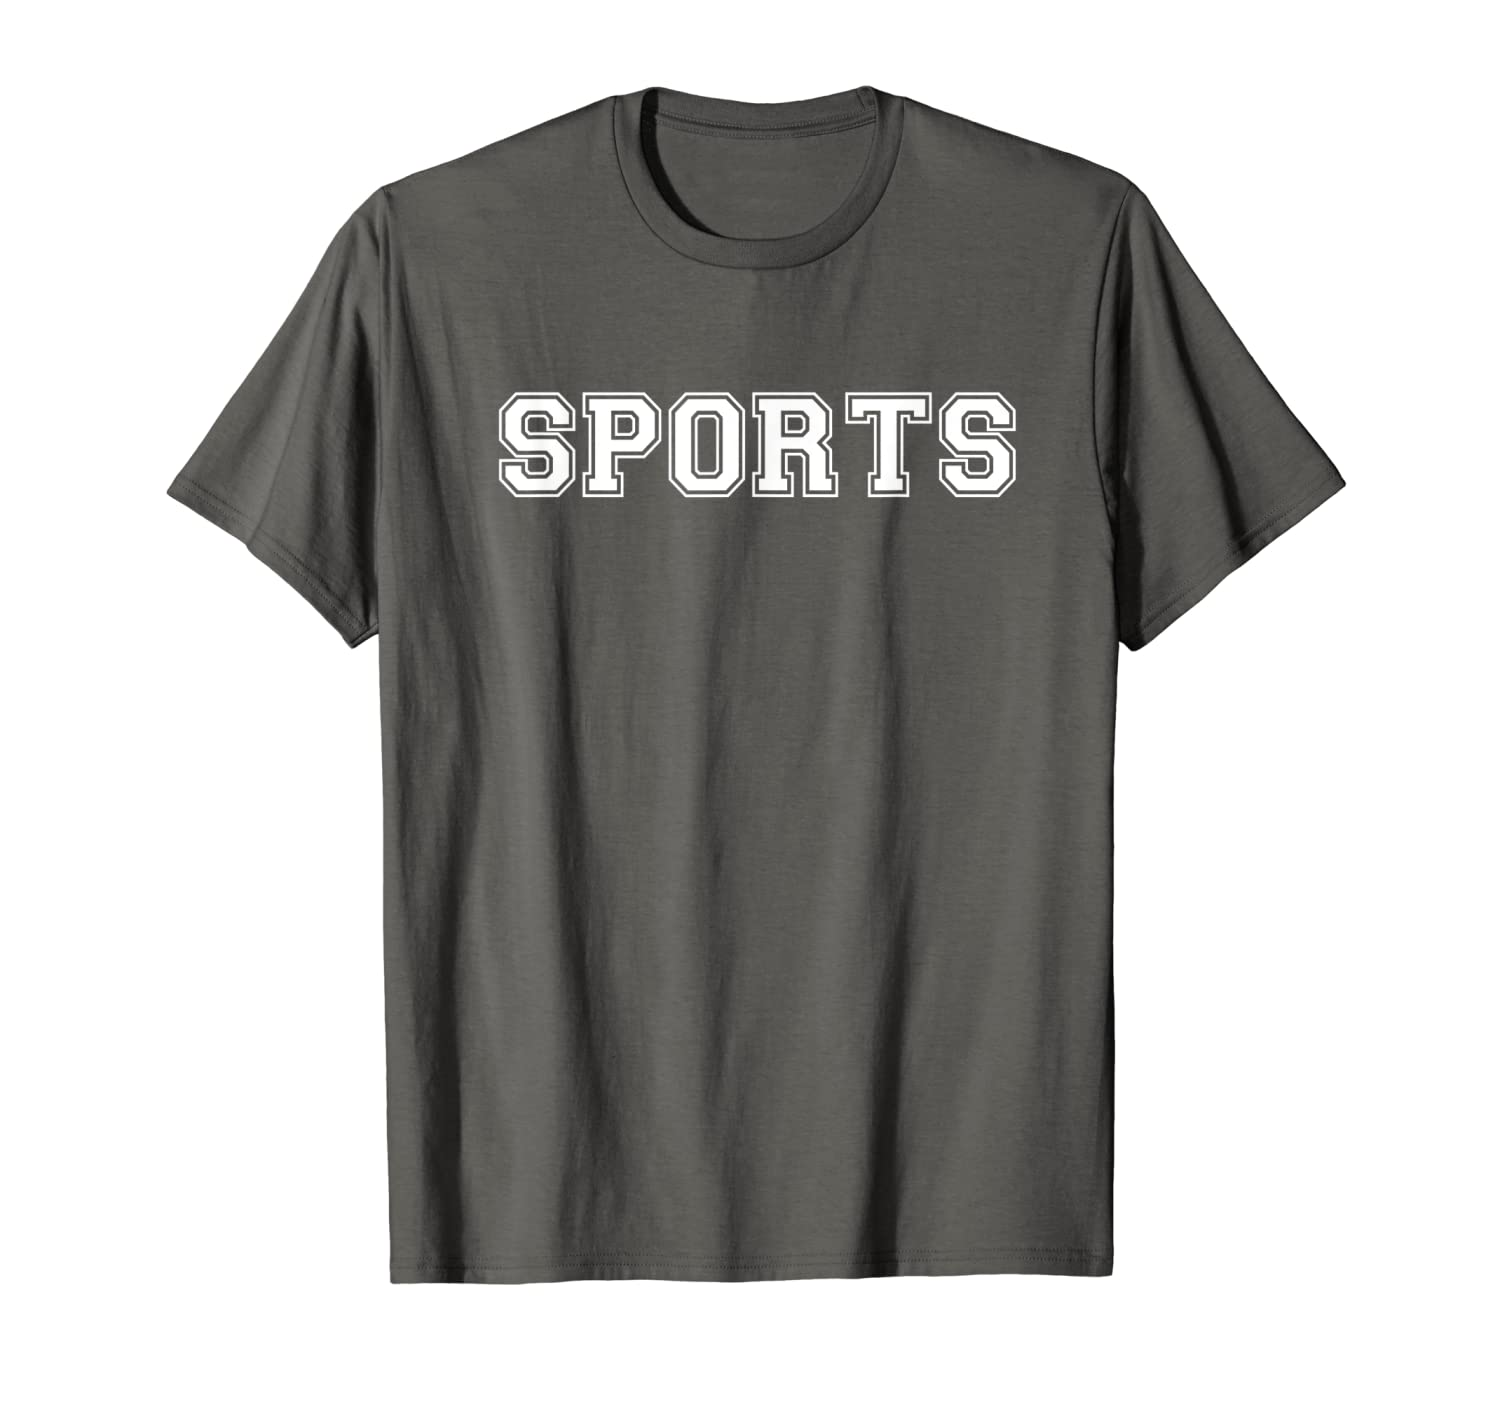 b775af32 Amazon.com: Sports T Shirt - Say Sports Tee: Clothing